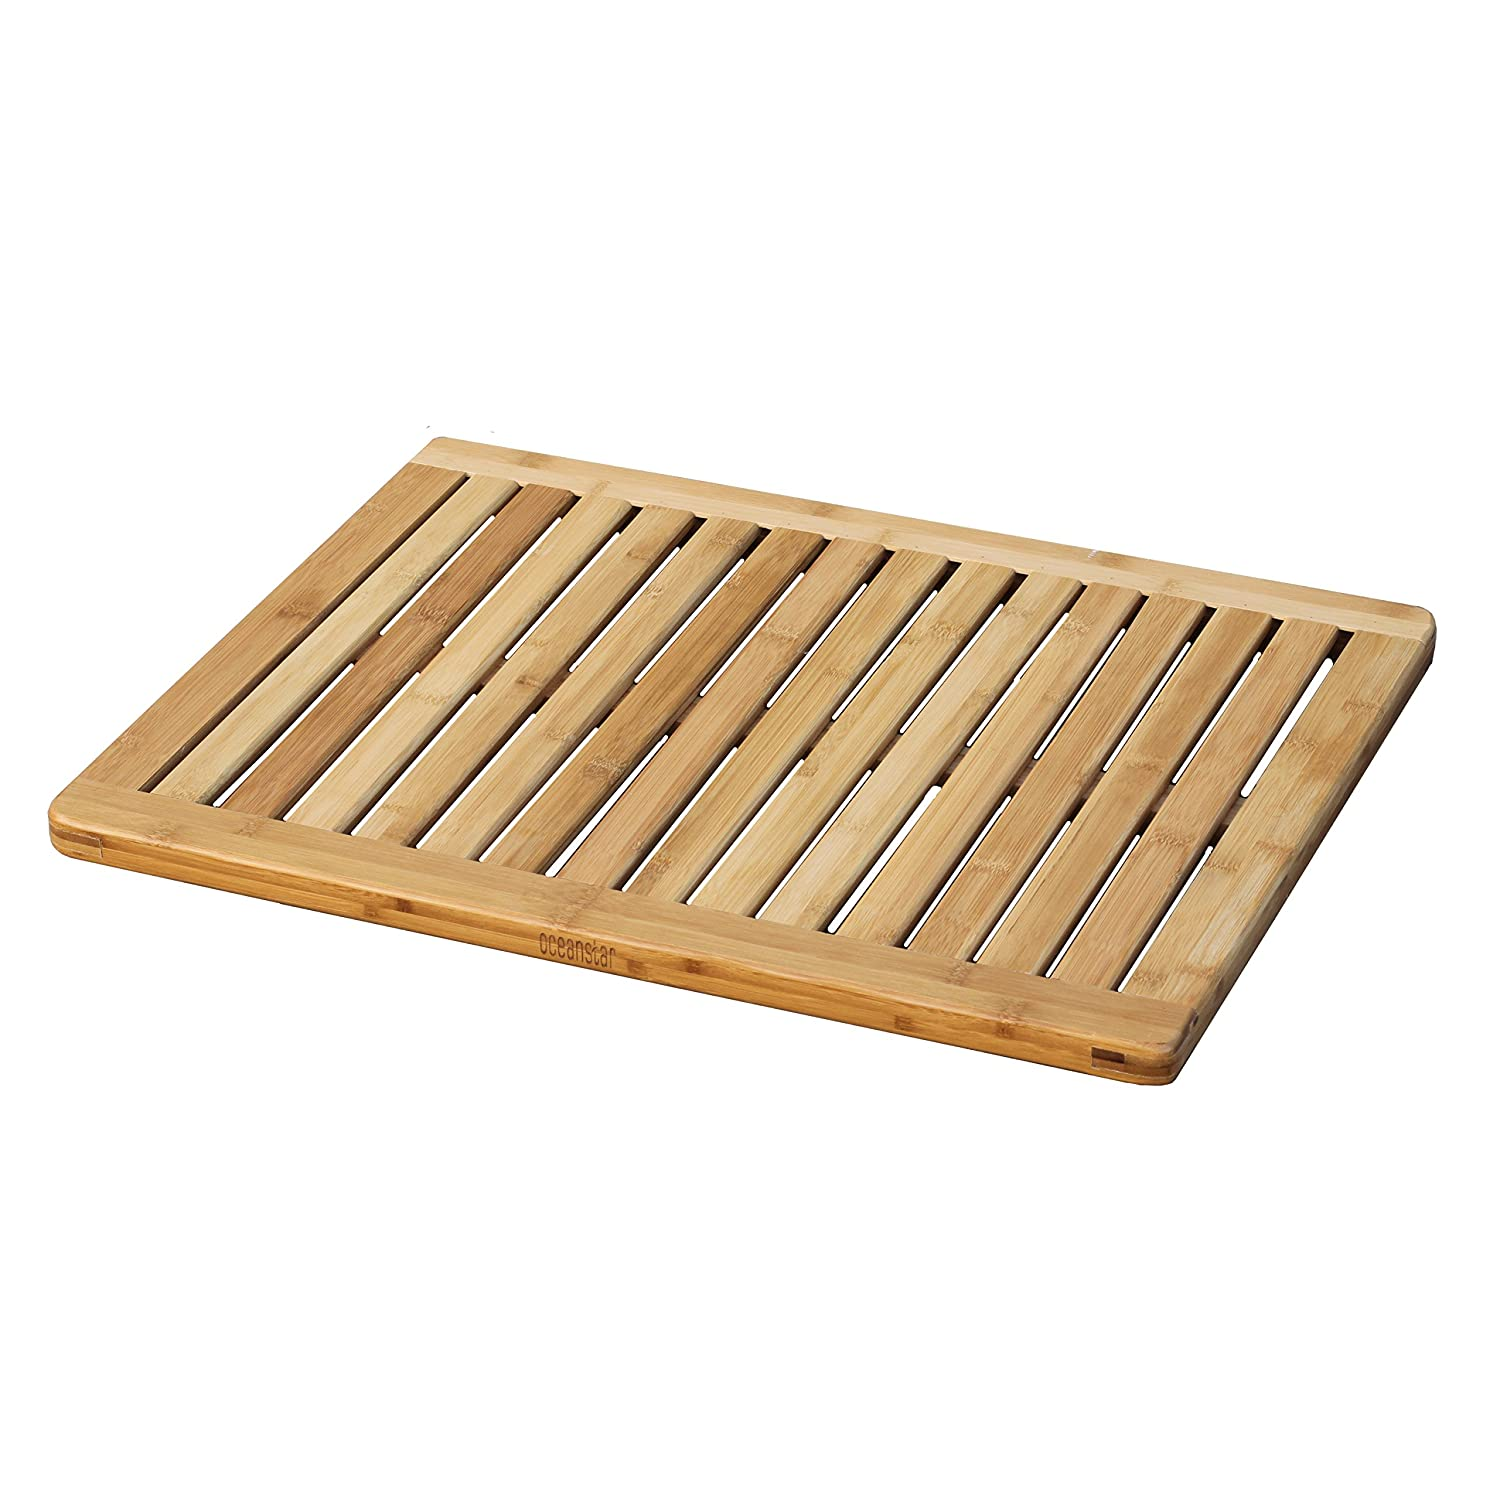 full also awesome mat kitchen floors of car bamboo floor cleaner size mats and cool